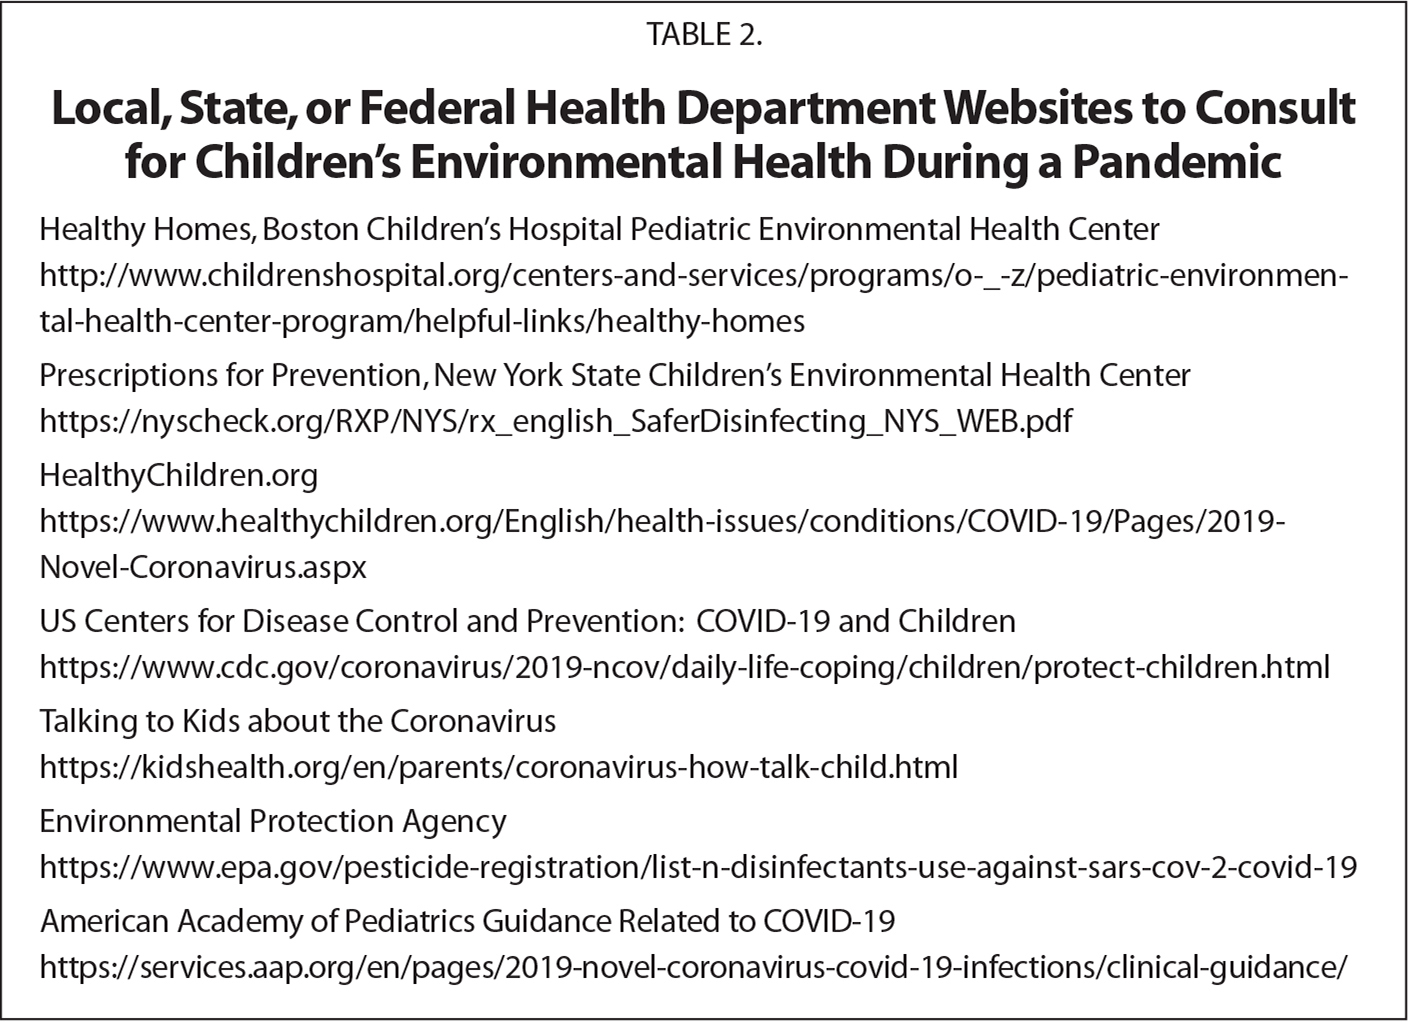 Local, State, or Federal Health Department Websites to Consult for Children's Environmental Health During a Pandemic